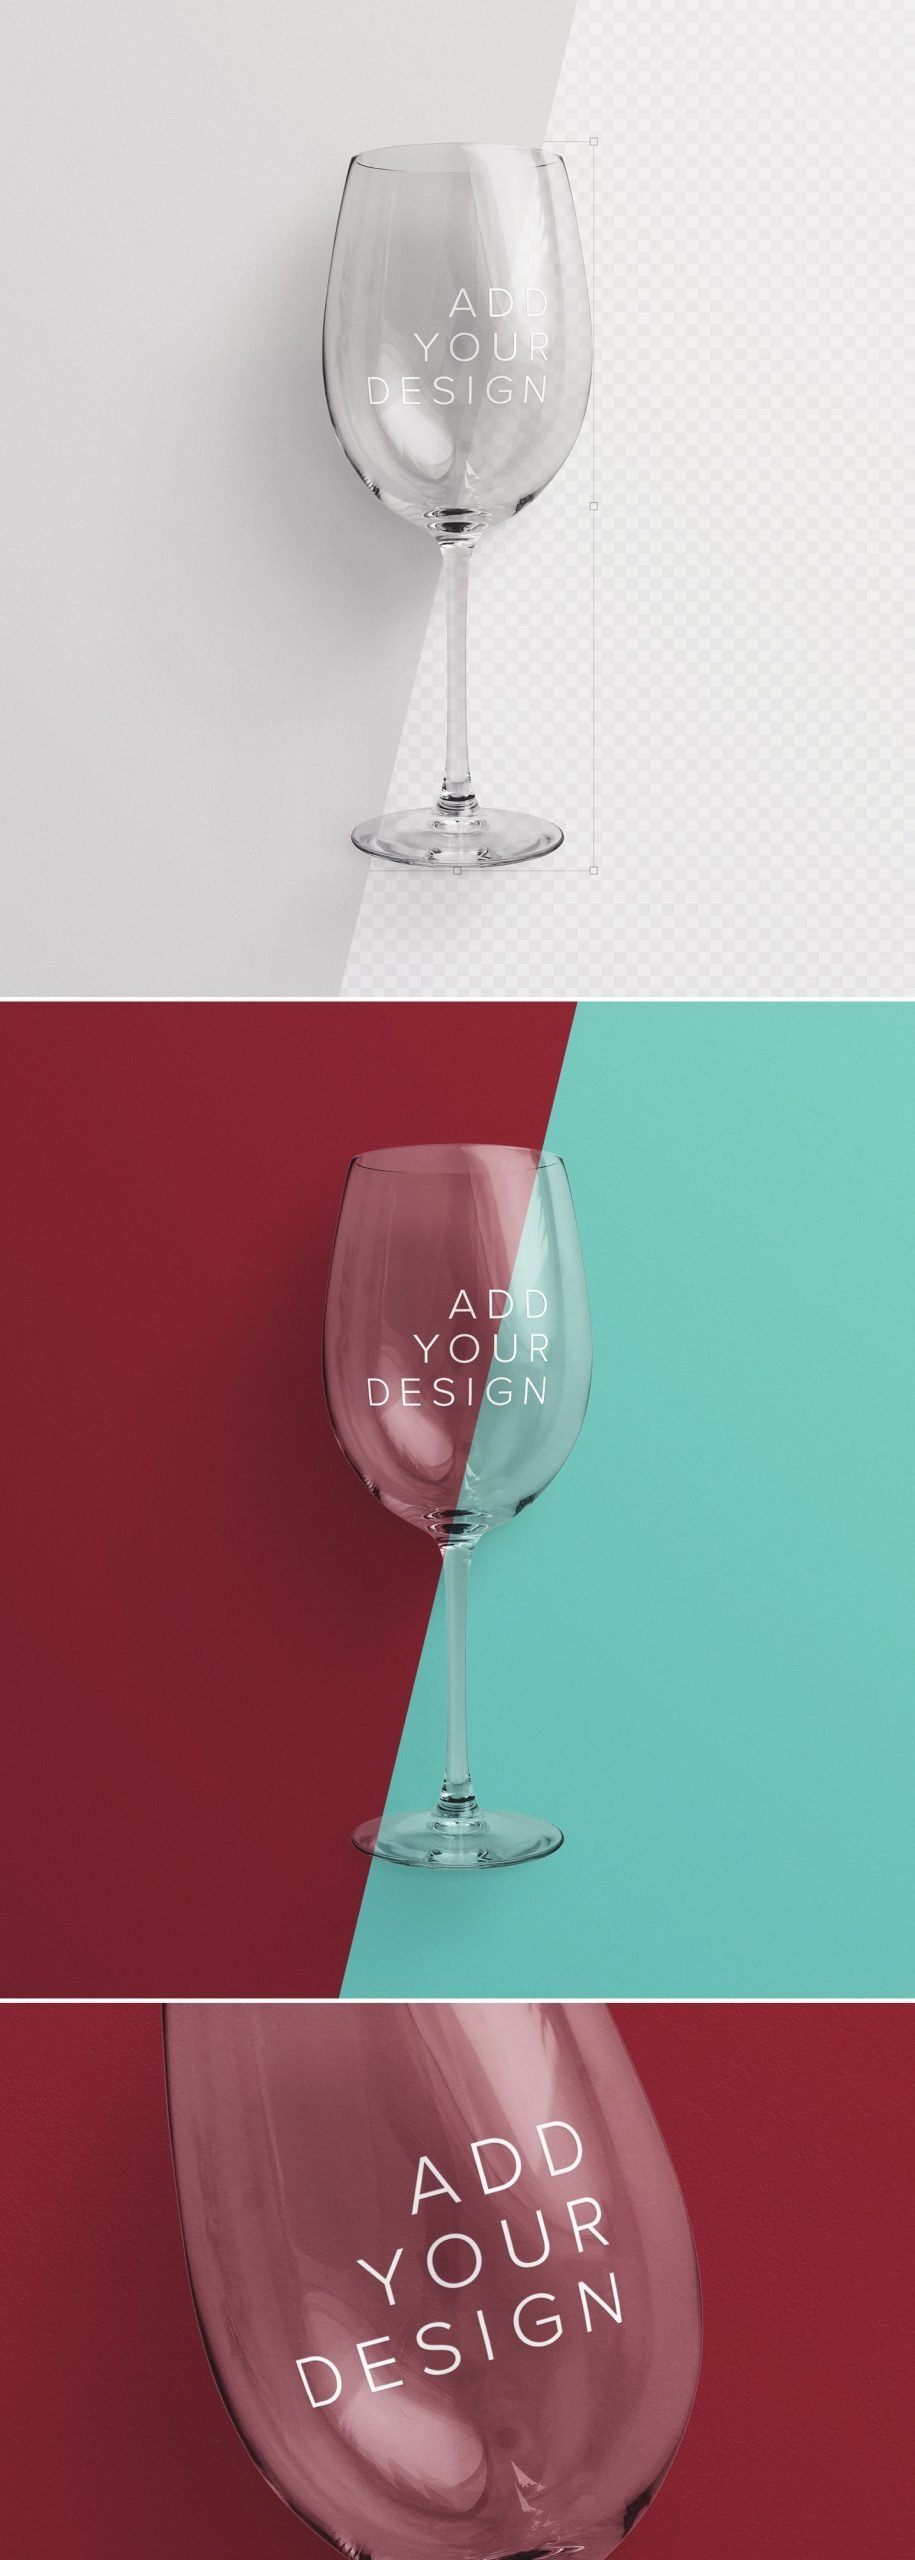 wine glass mockup preview 1 scaled